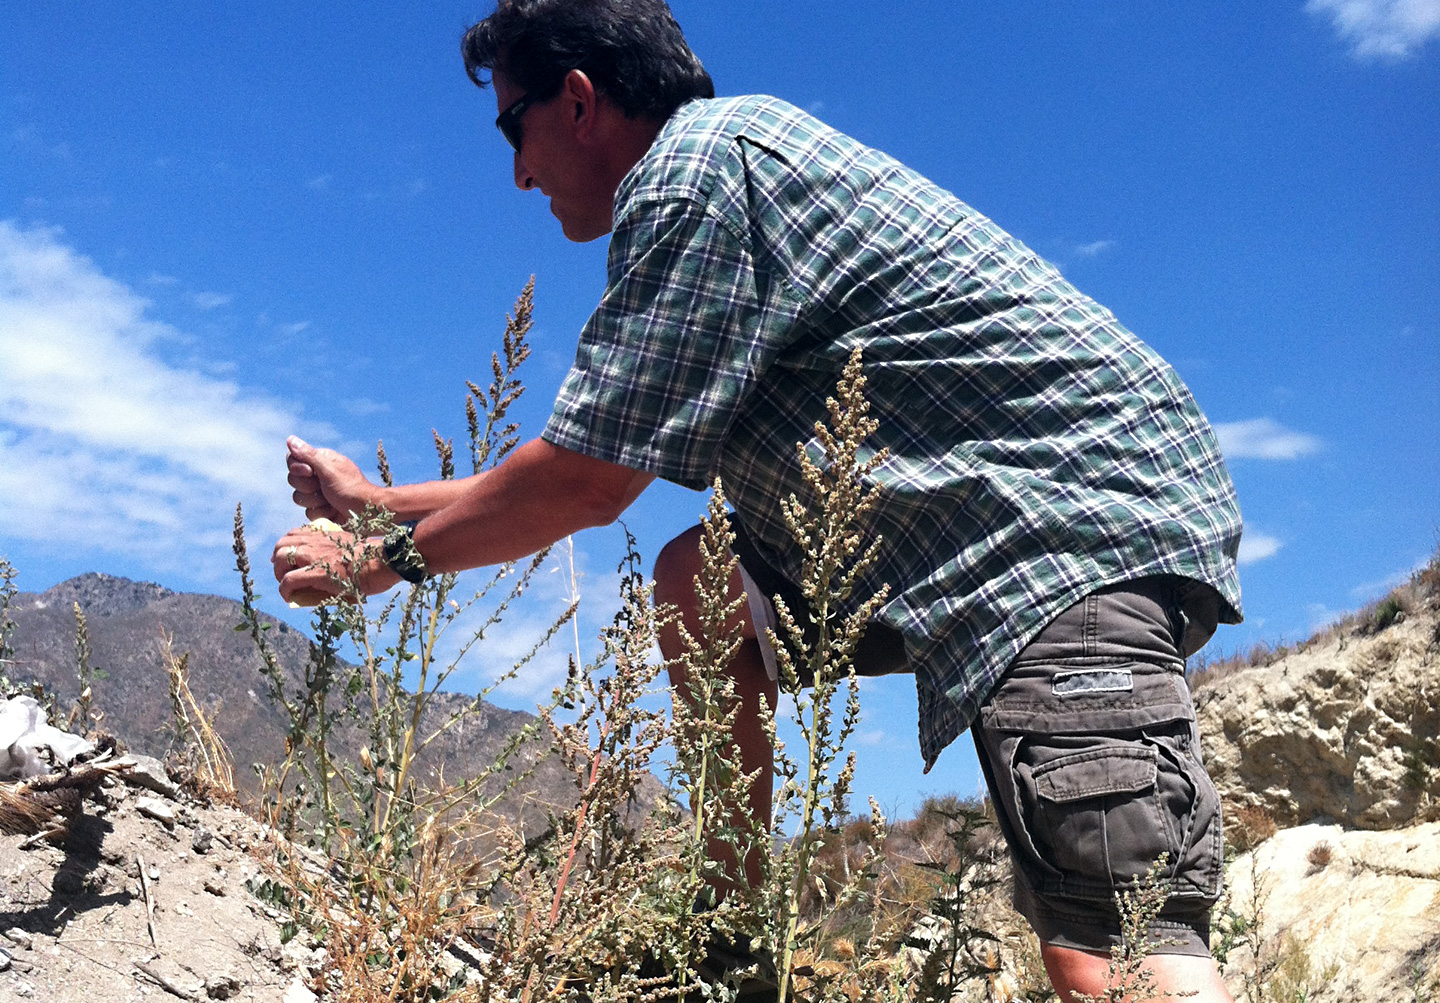 Rick Jellen collects varieties of wild quinoa on the side of the road throughout Los Angeles. (Casey Miner/KQED)